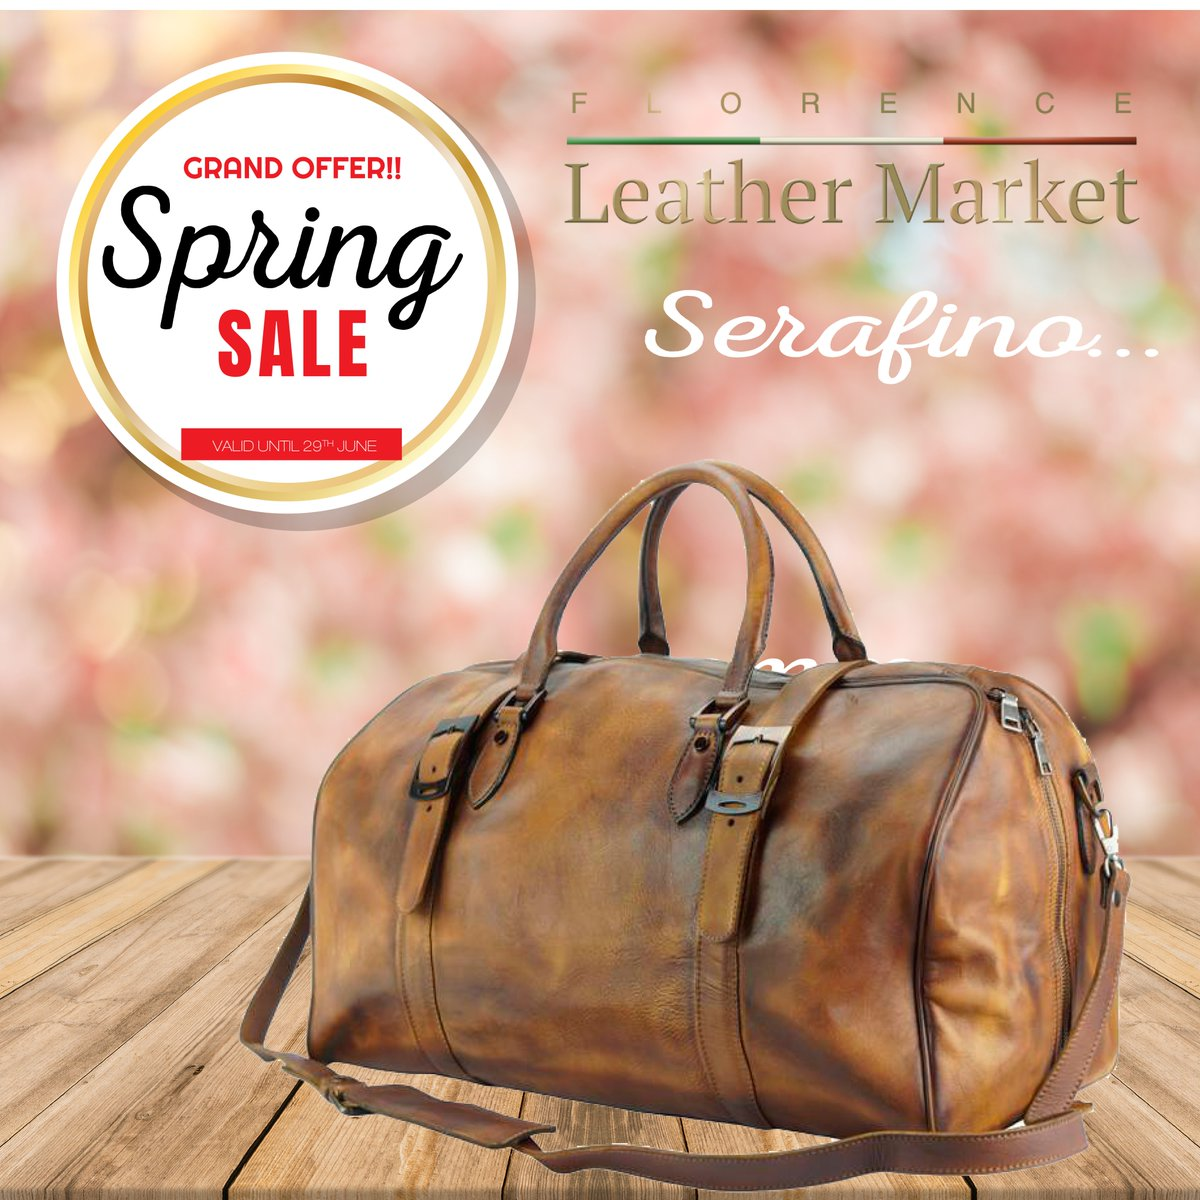 OFFER OF THE MONTH  Crafted in vintage leather, the Serafino is a very light and soft travel bag. It is surprisingly roomy and with a multifunctional interior. Thanks to an ergonomic design, a large zipper opening and multiple ways of carrying it. <br>http://pic.twitter.com/1YhRUB7VAR